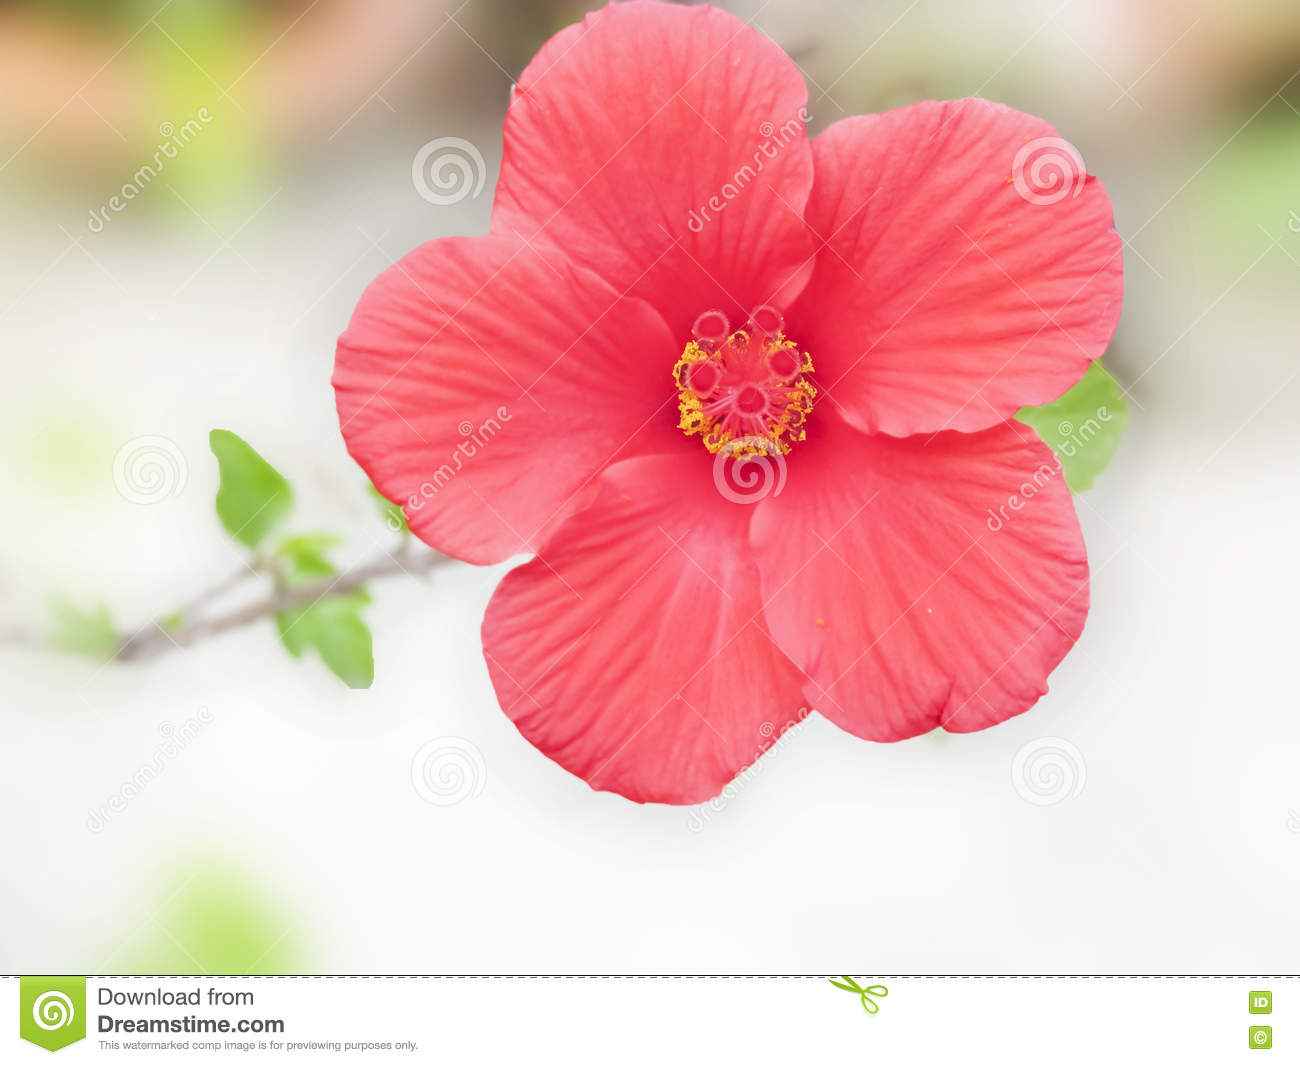 Pollens And Stigma Of Hibiscus Flower Stock Image Image Of